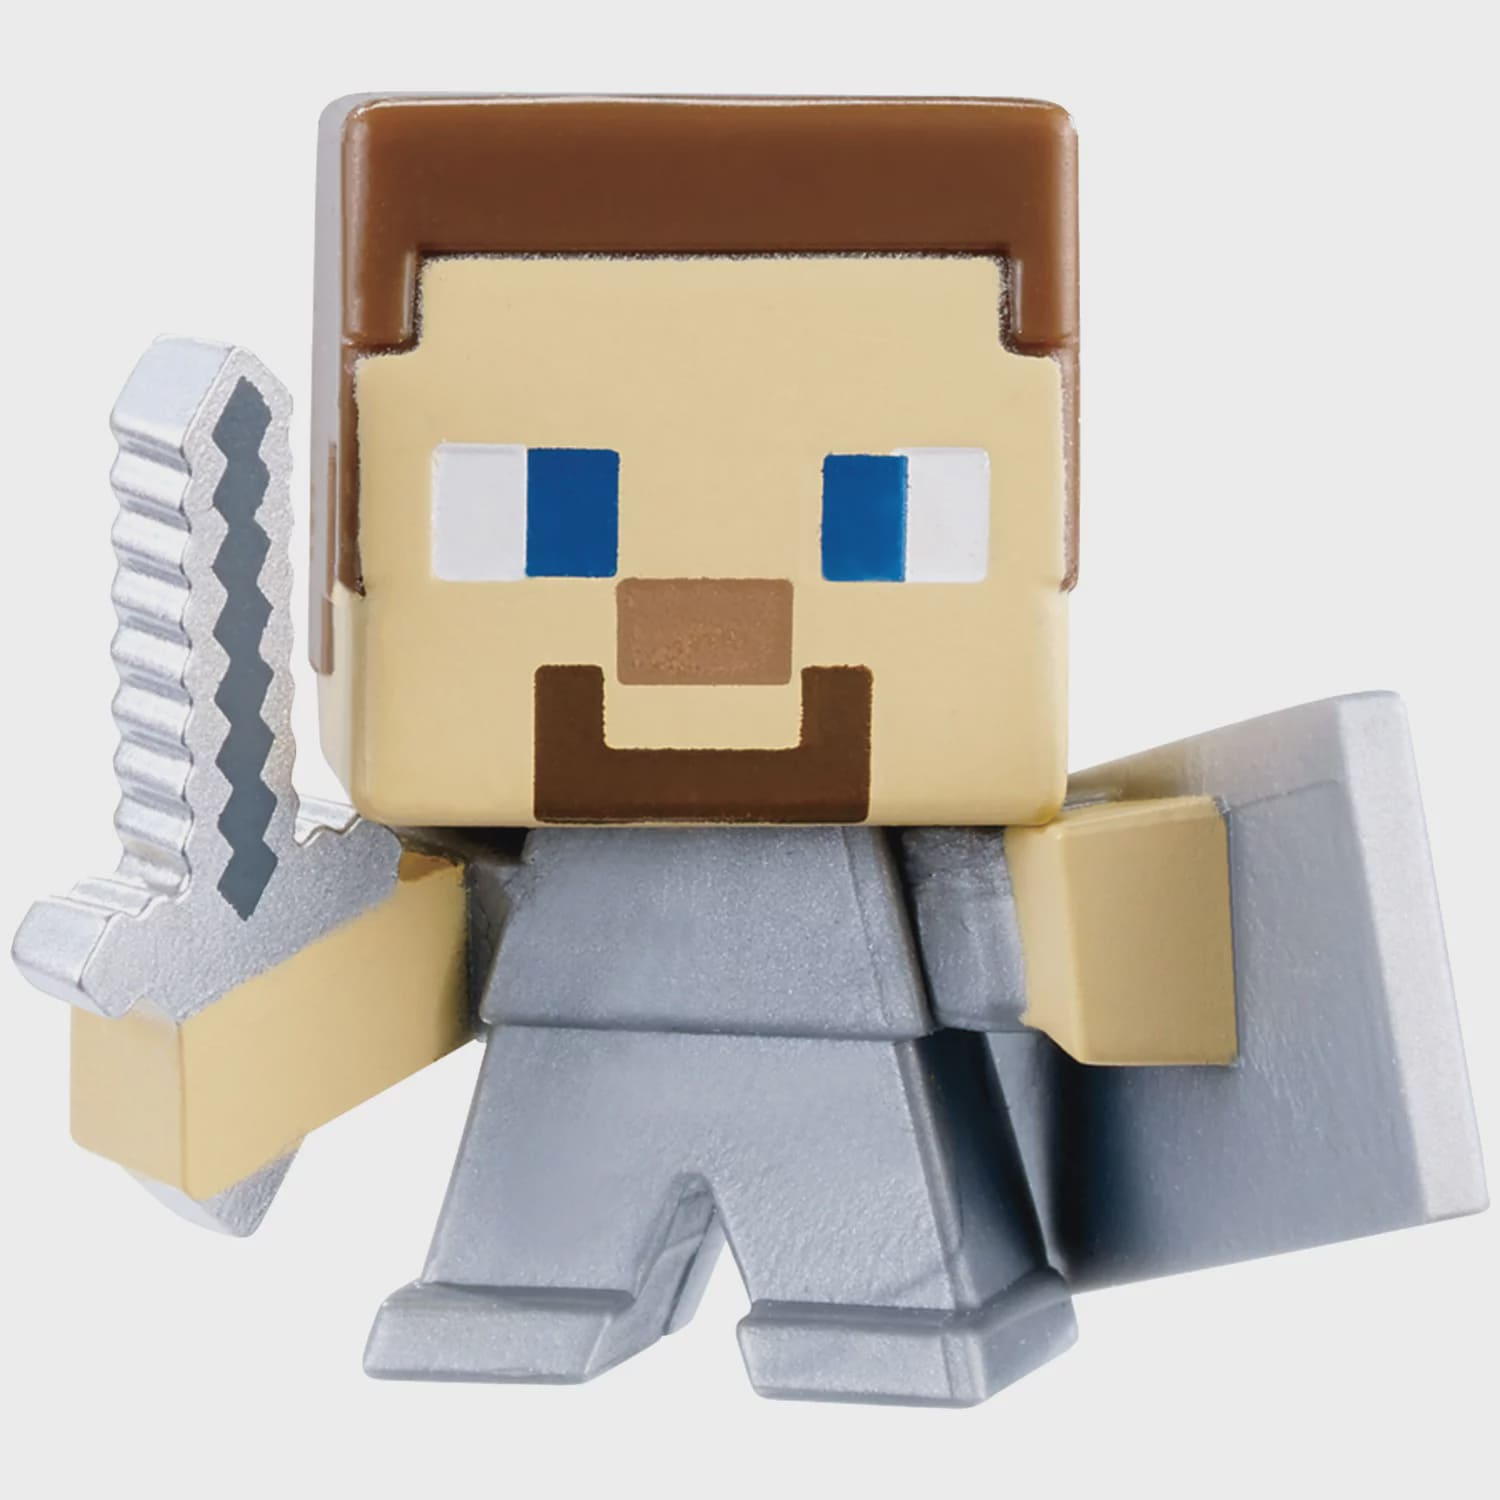 Mattel Cjh36 Minecraft Mini Figure by Mattel